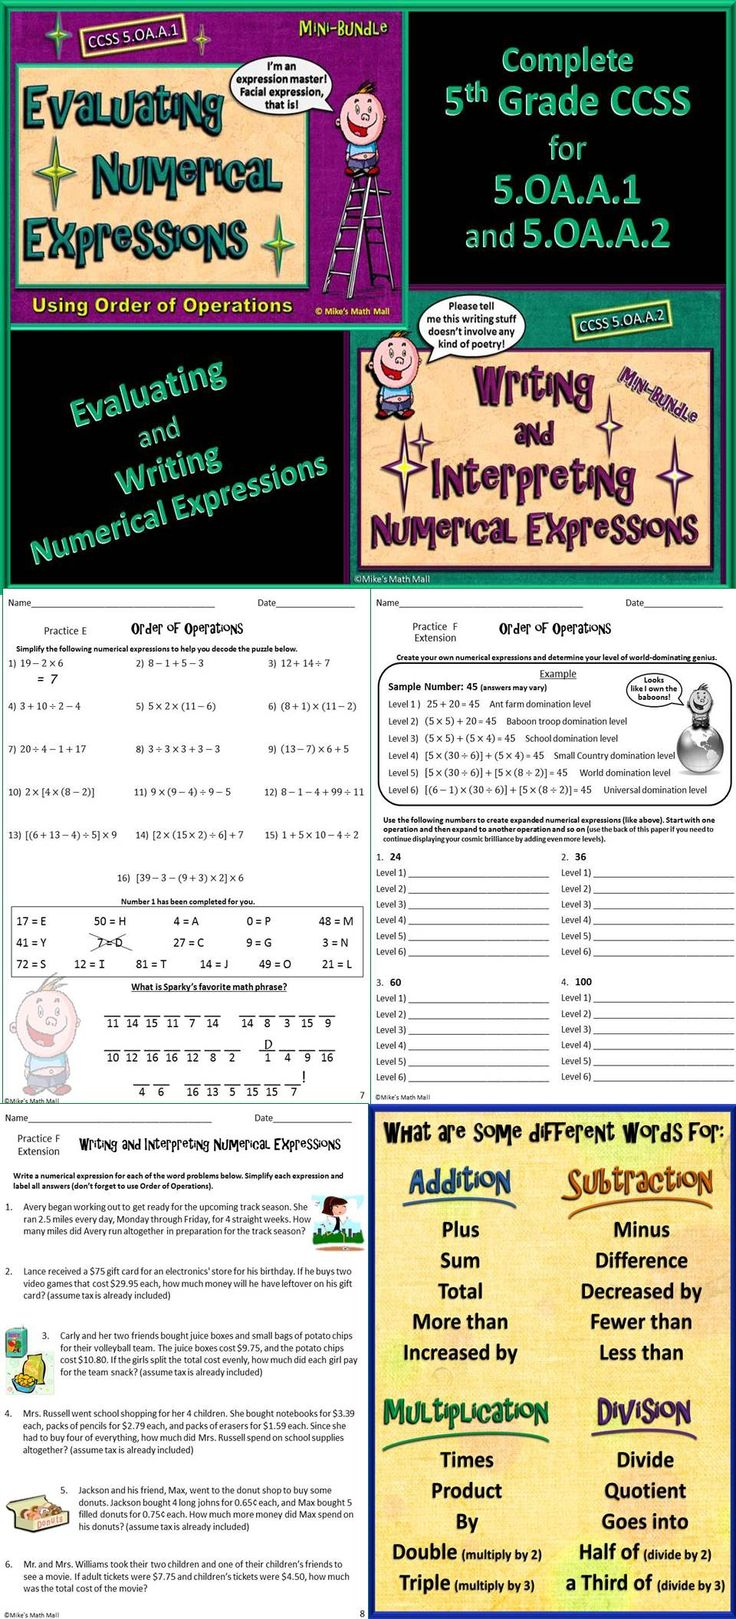 This is an awesome bundled unit that completely covers writing and interpreting numerical expressions, including order of operations (CCSS 5.OA.A.1 and 5.OA.A.2). This mega bundle includes two entertaining and very interactive PowerPoints, 12 differentiated practice pages, 2 comprehensive assessments, posters, notes, anchor charts, etc. Your students will love it! Mike's Math Mall - $